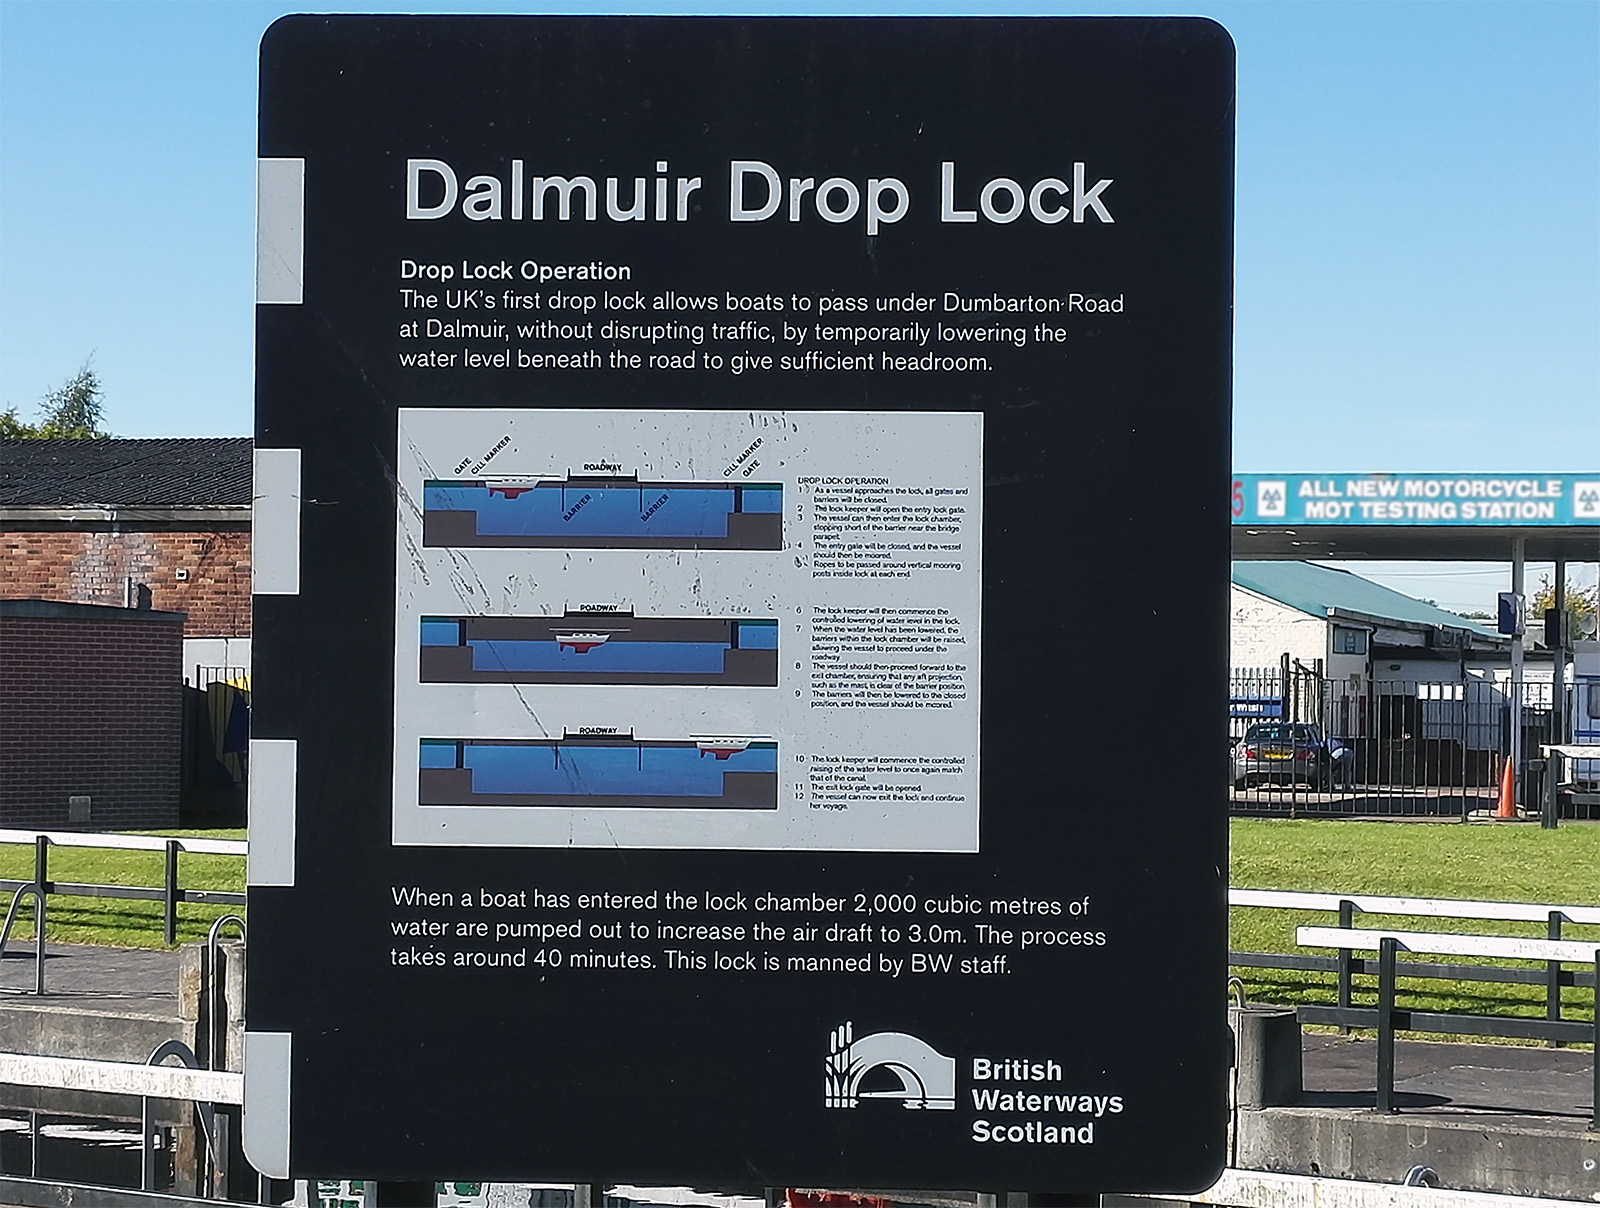 Forth and Clyde Canal (Scotland) - Dalmuir